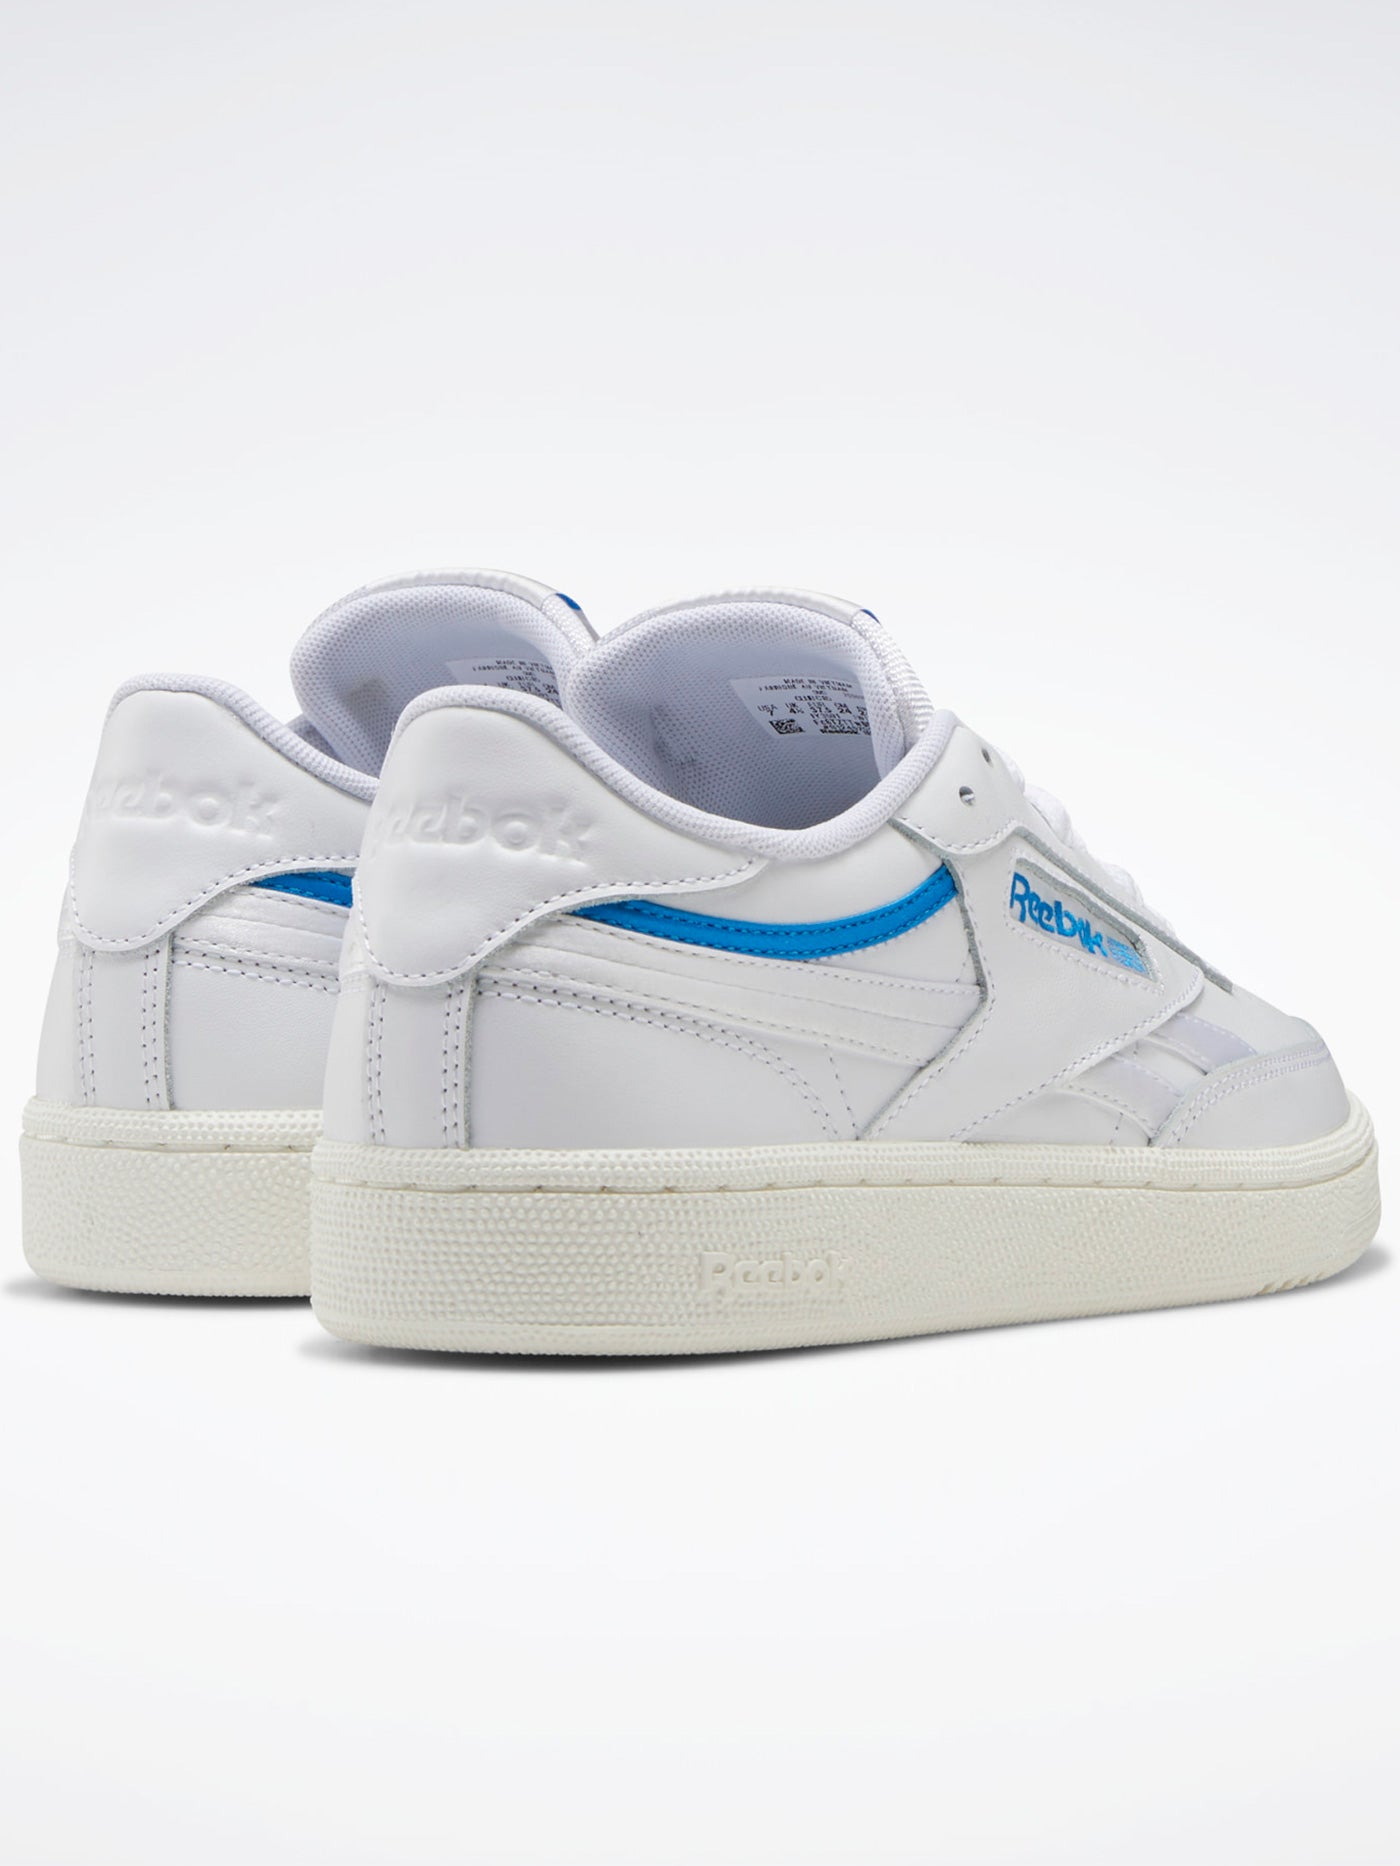 WHITE/HORIZON BLUE/CHALK